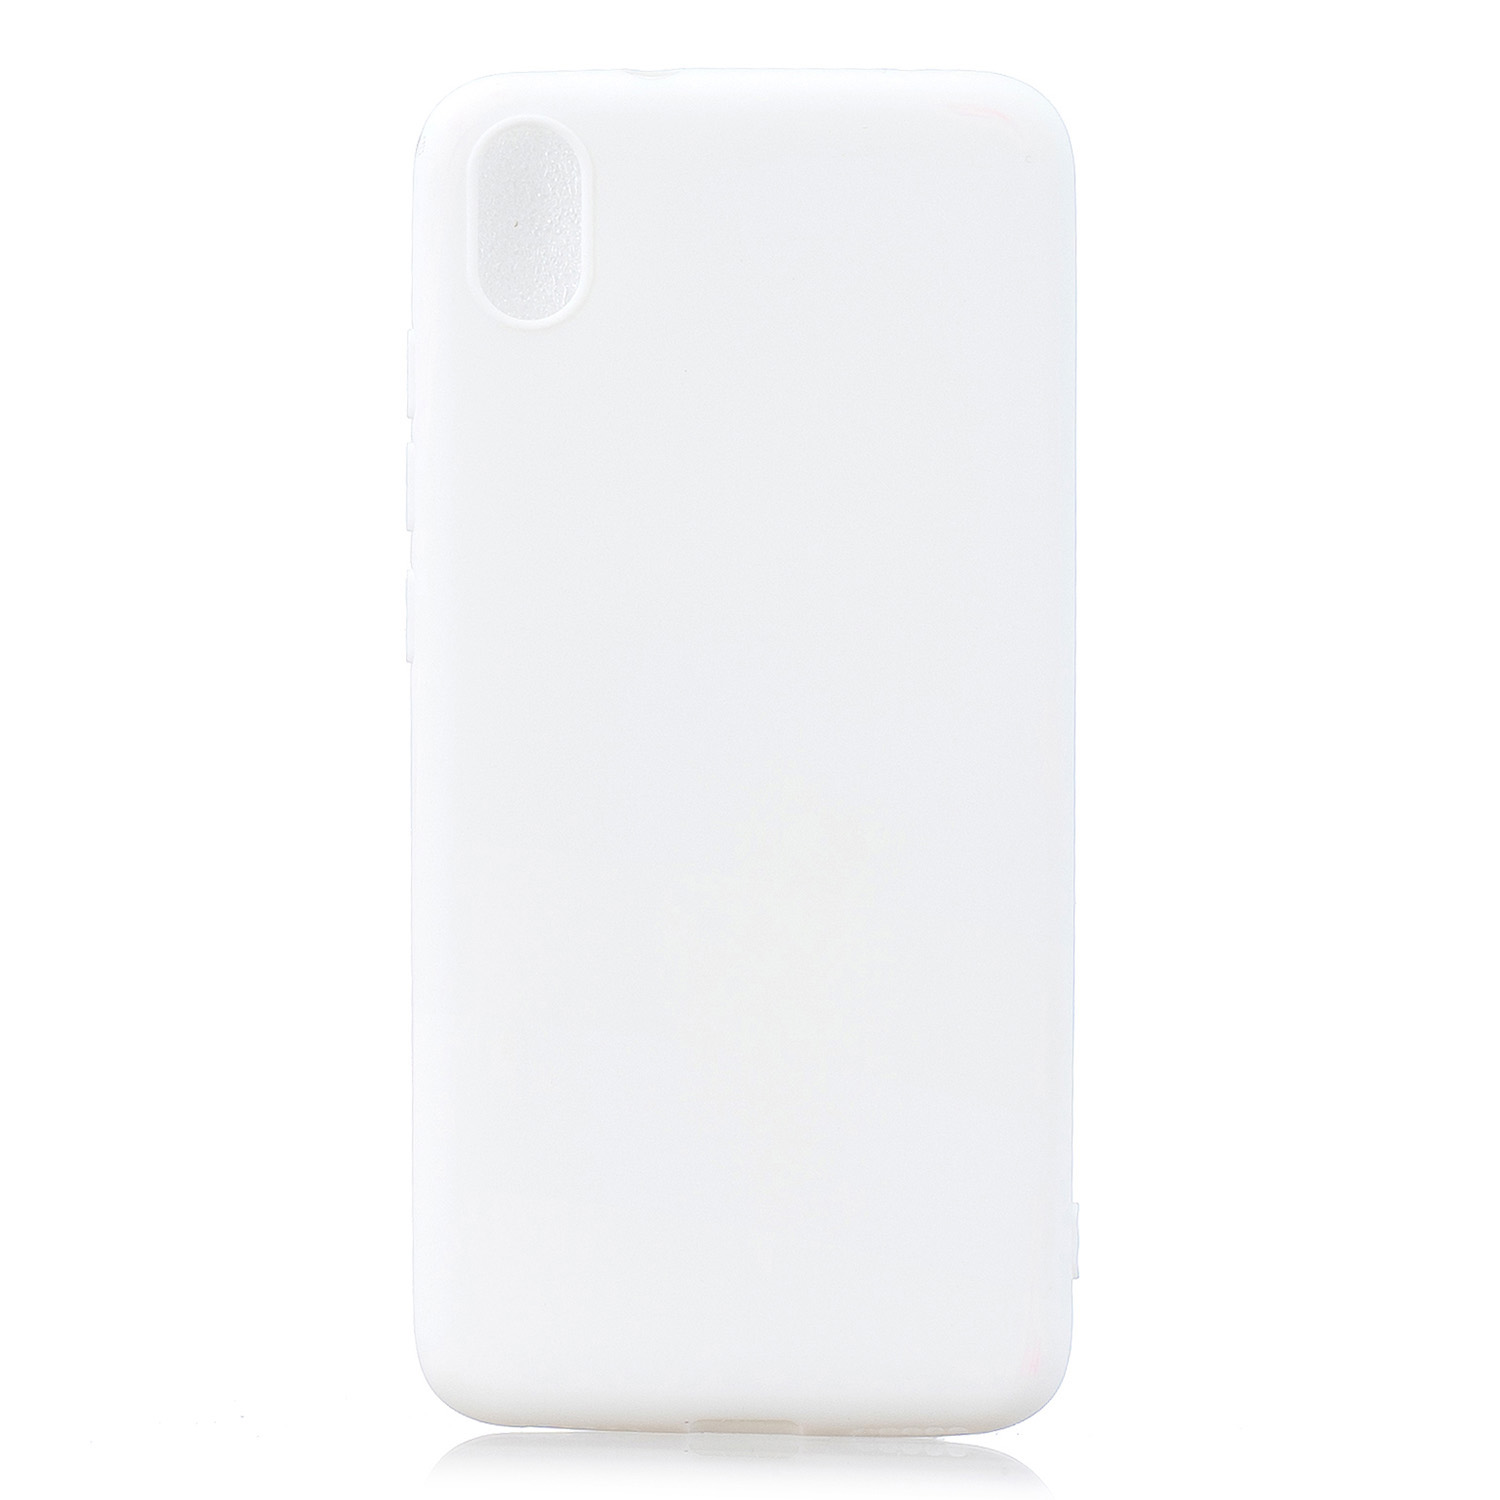 For Redmi 7A Lovely Candy Color Matte TPU Anti-scratch Non-slip Protective Cover Back Case white